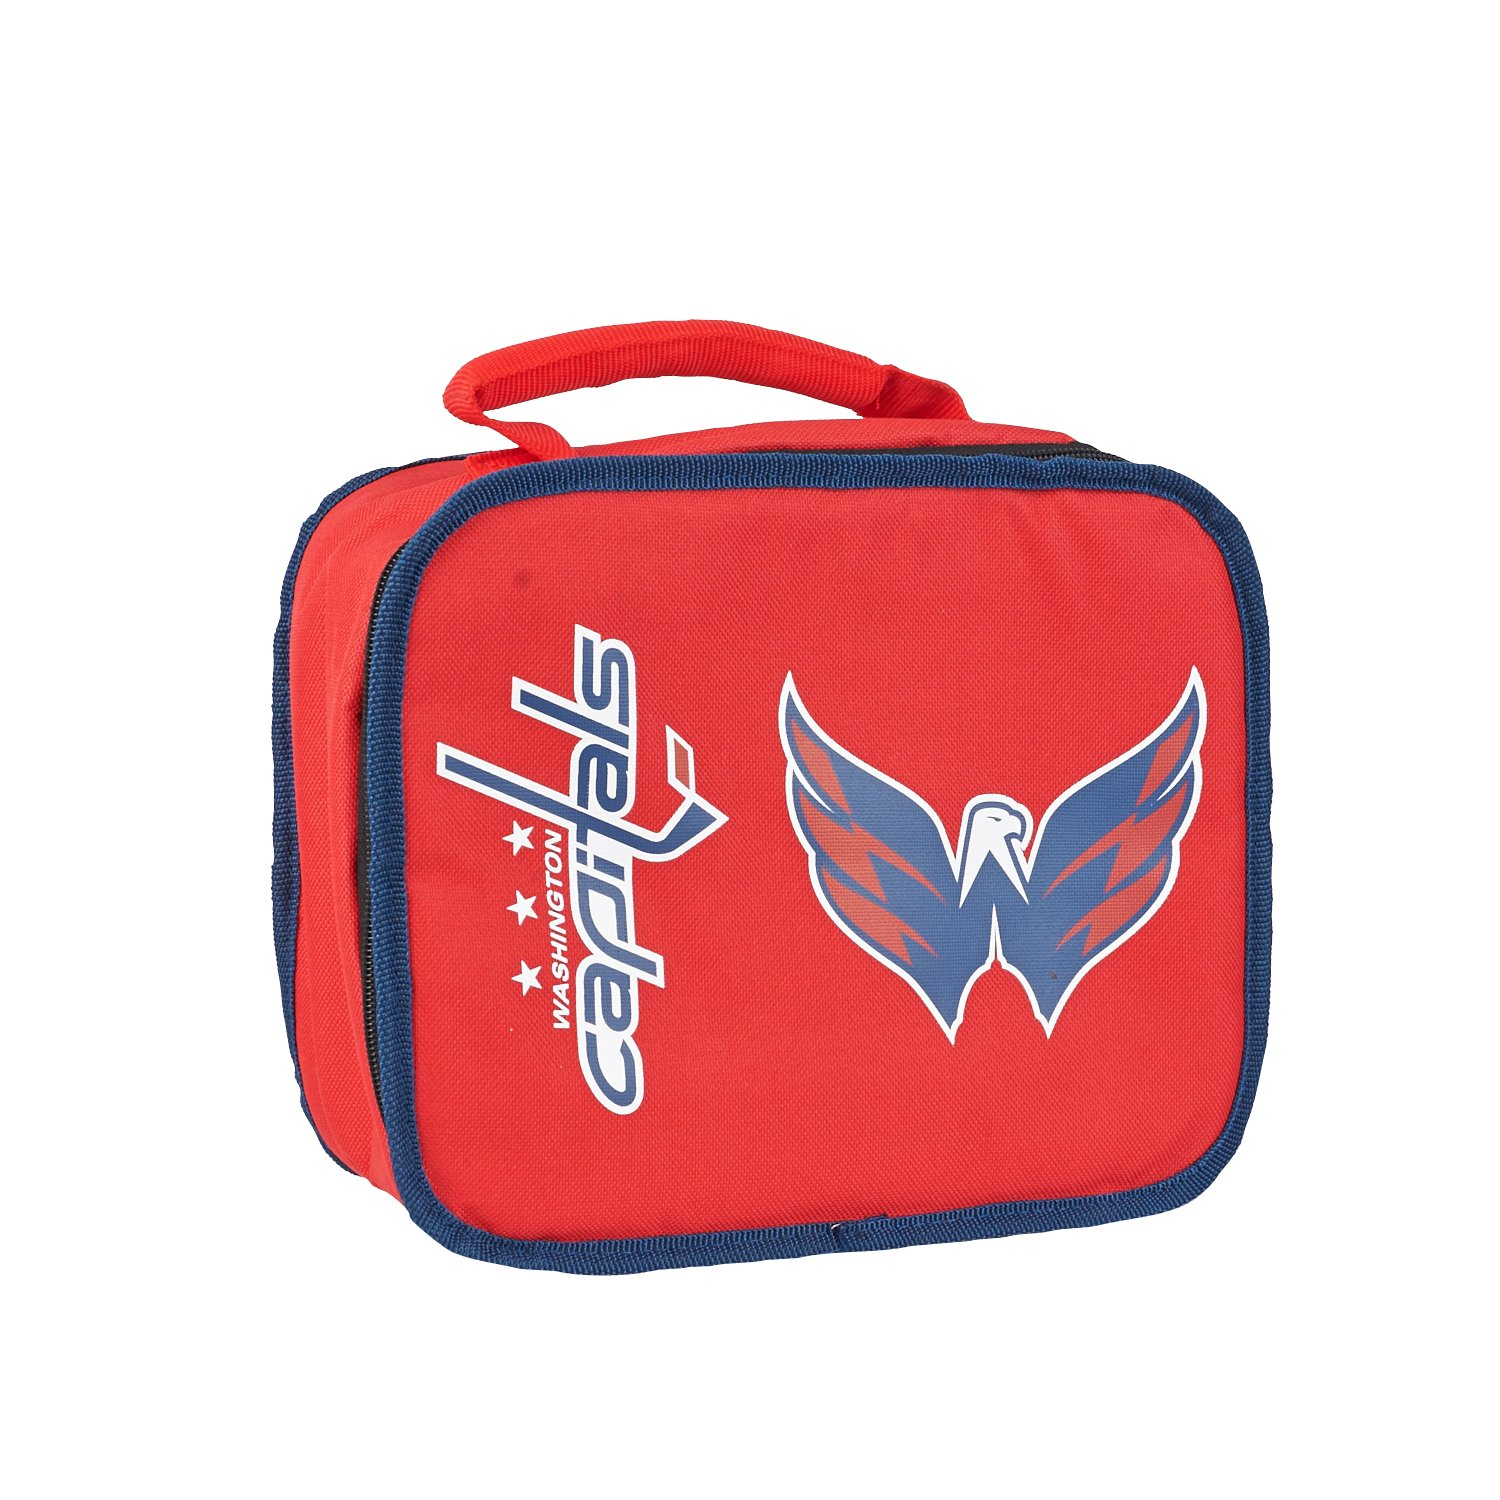 Officially Licensed NHL Chicago Blackhawks Sacked Lunch Cooler The Northwest Company C11NHL42C600004RTL